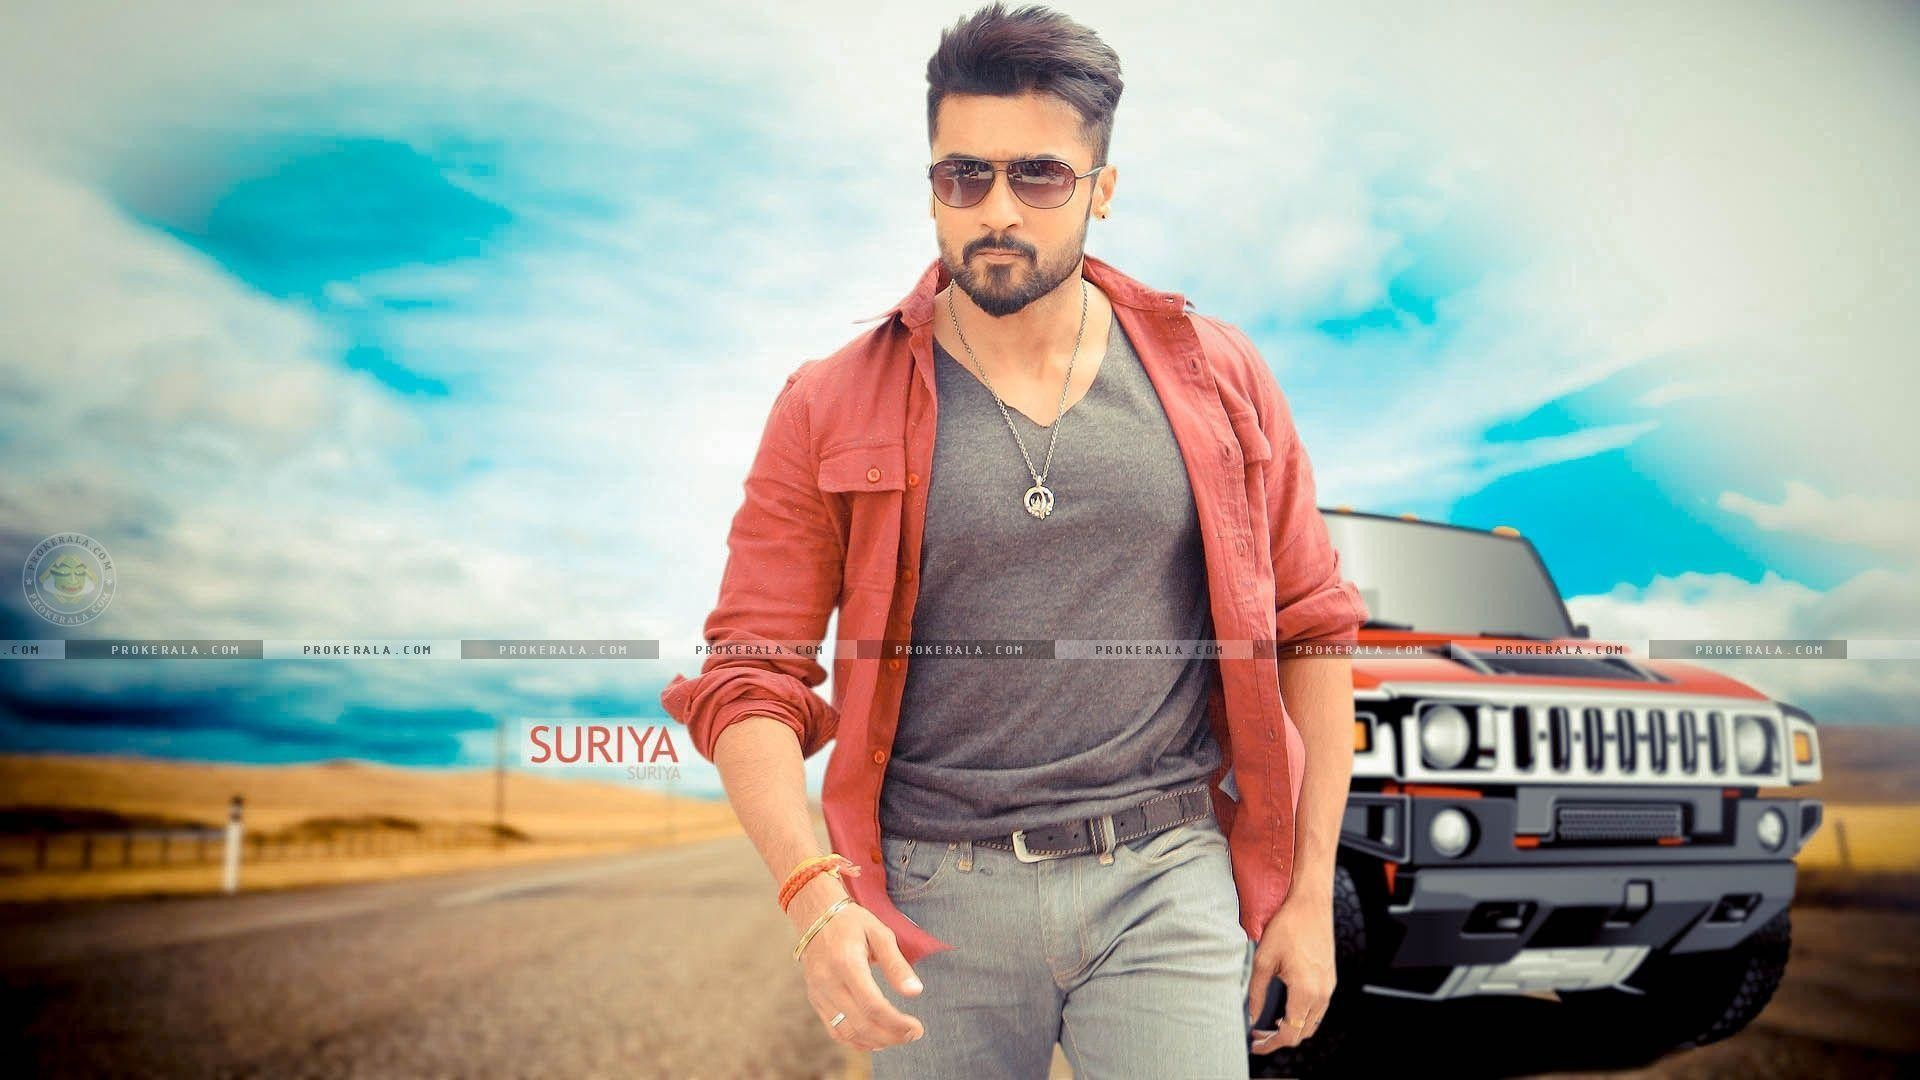 Surya Hd Wallpaper 2018 ①